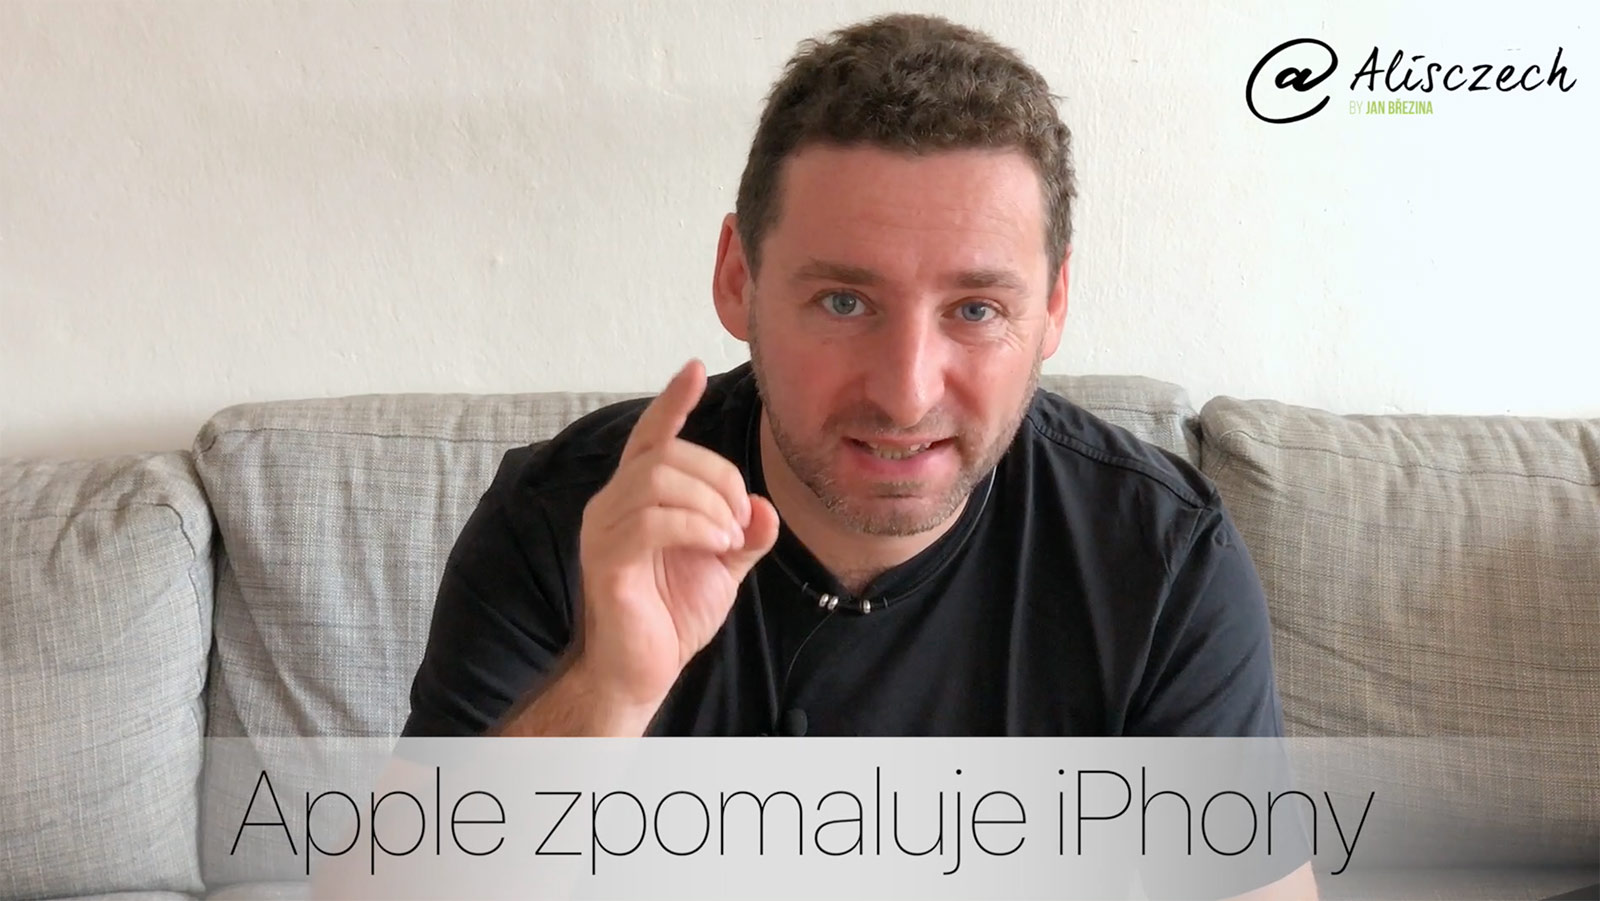 Zpomaluje Apple iPhony?